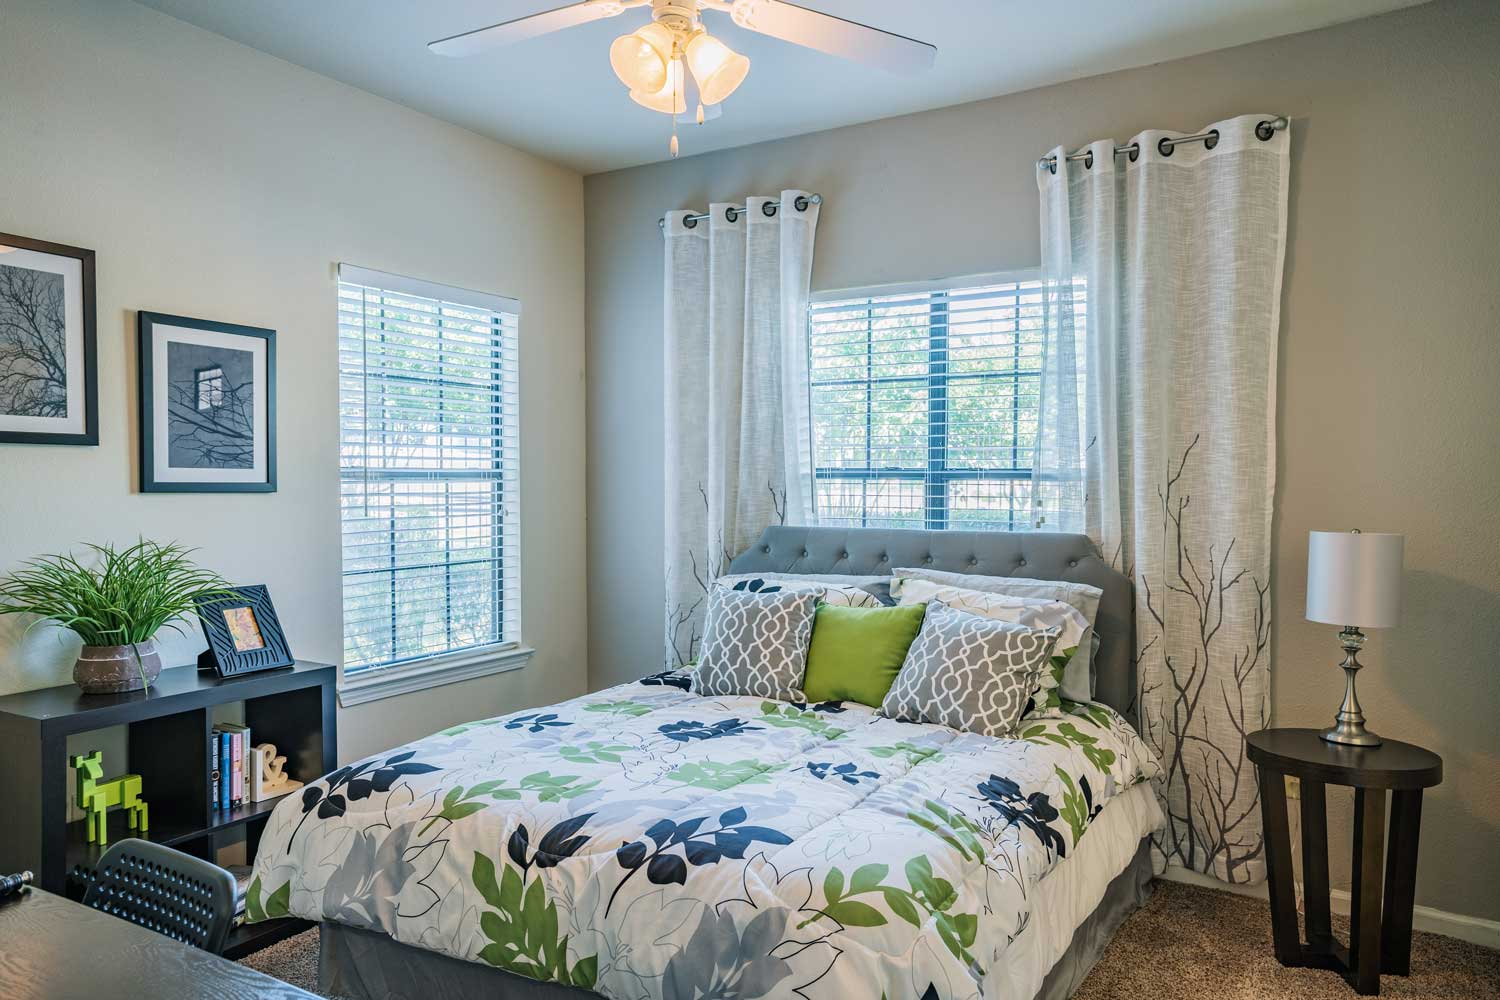 Interior of Bedroom at Tech Ridge Apartments in Austin, TX